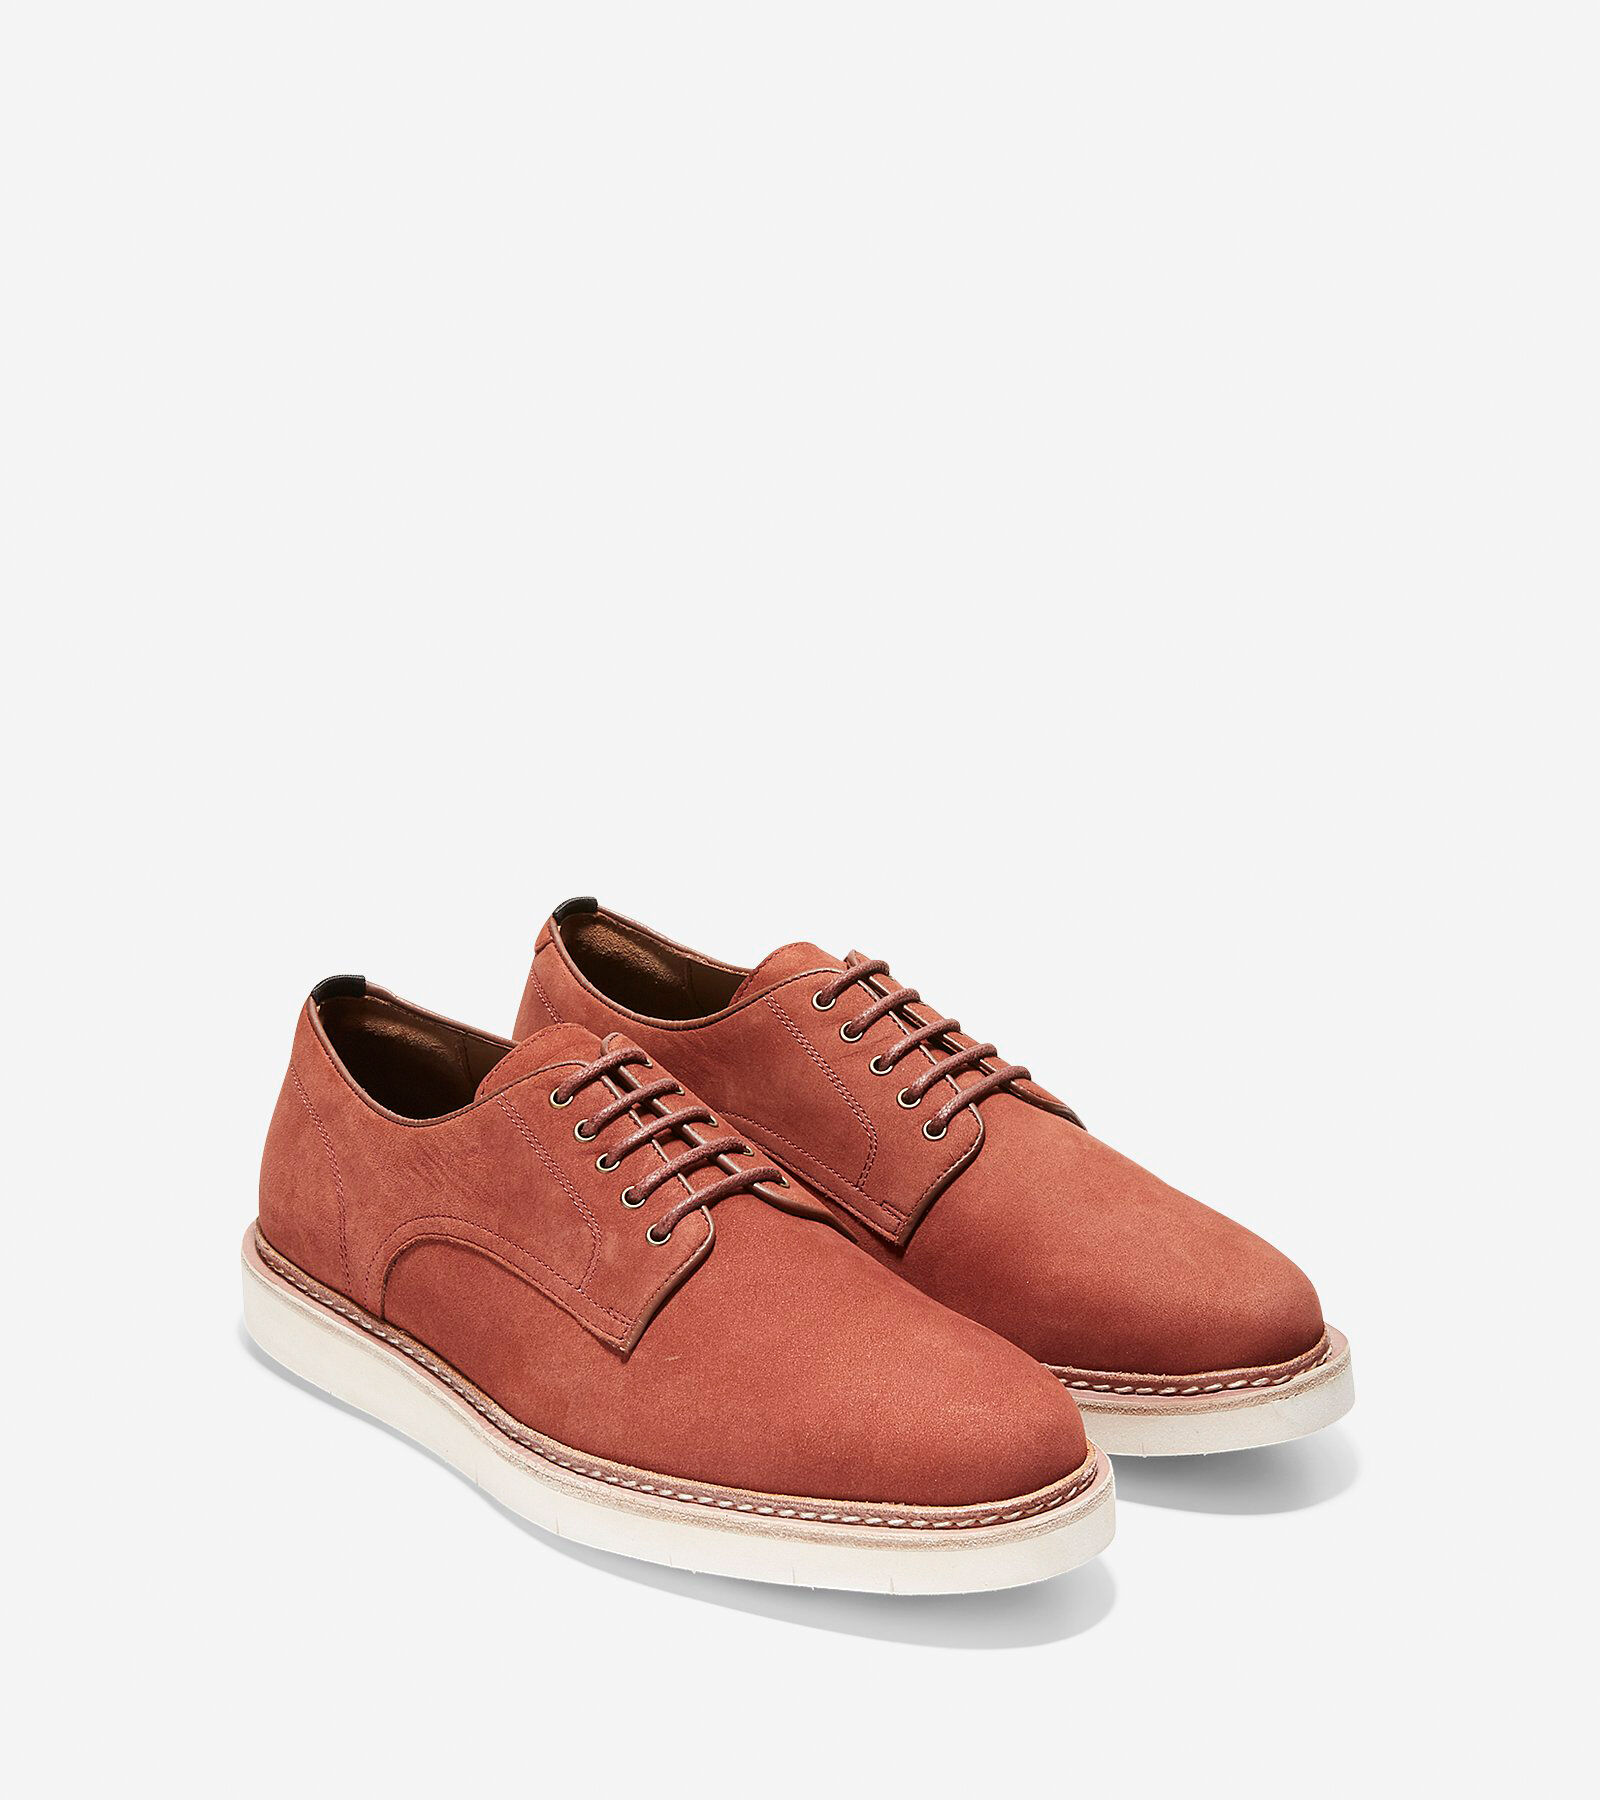 Tanner Plain Ox Cole Haan